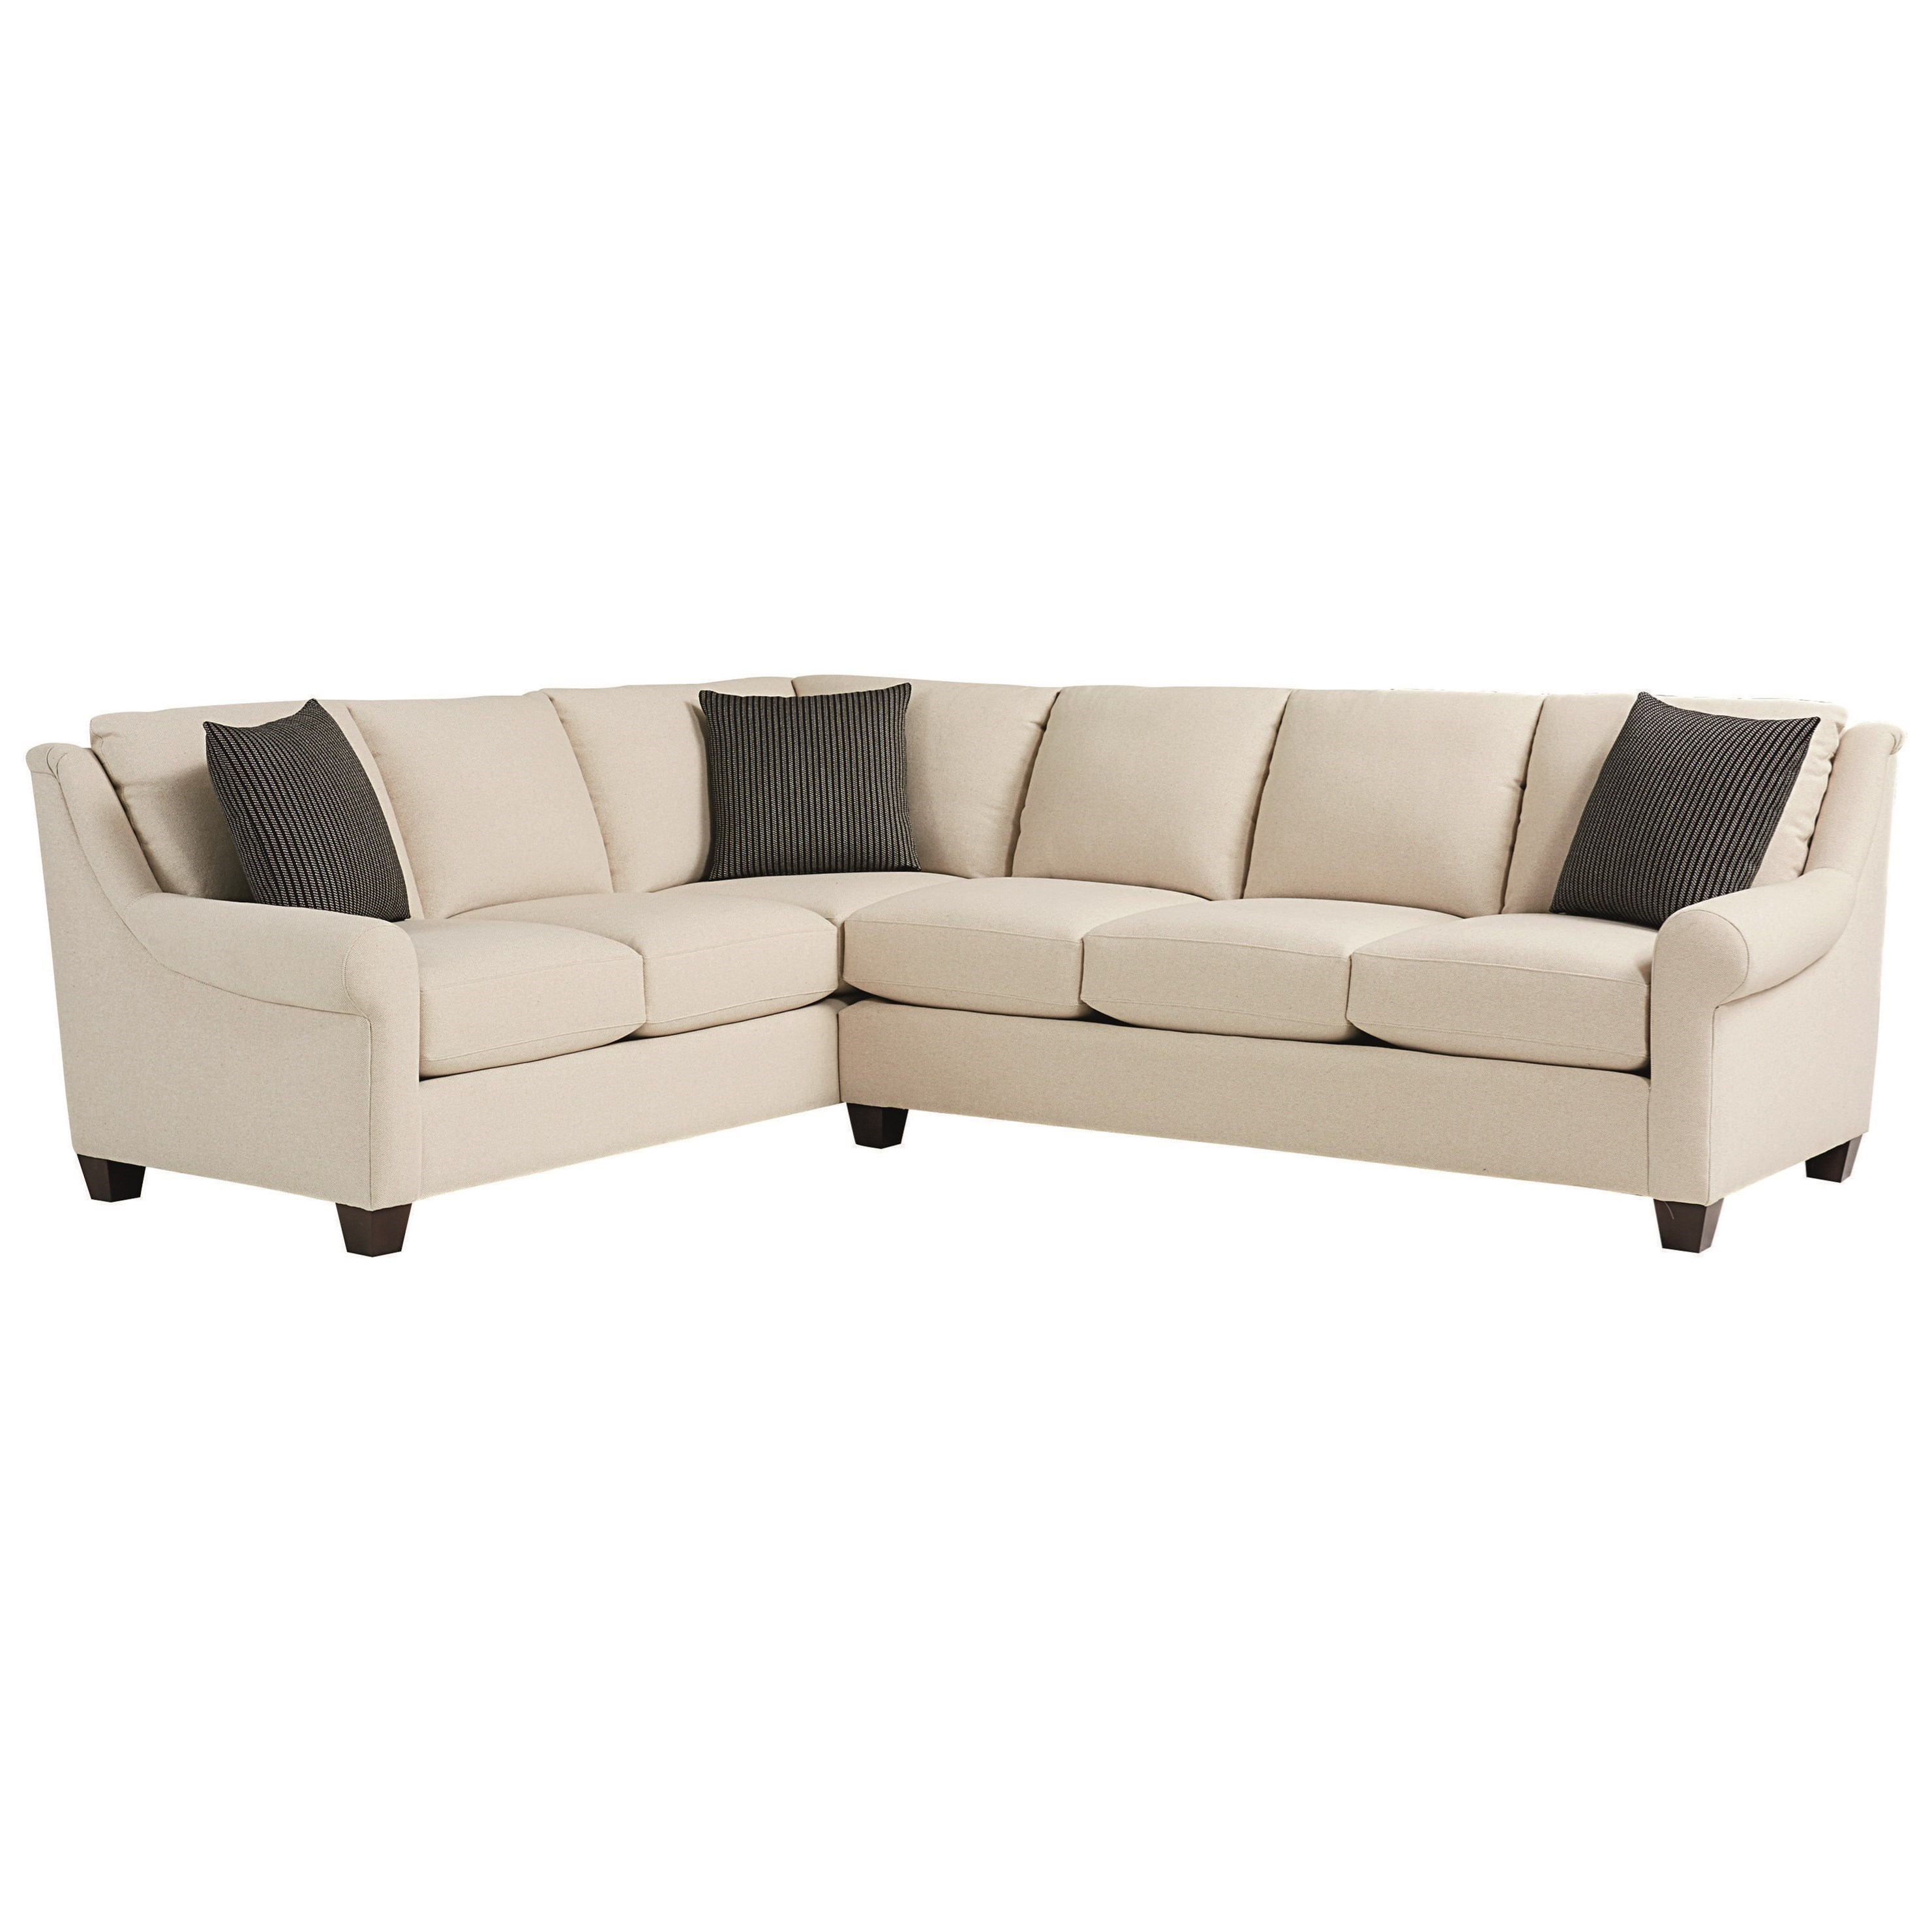 Ellery 5 Seat Sectional by Bassett at Fashion Furniture